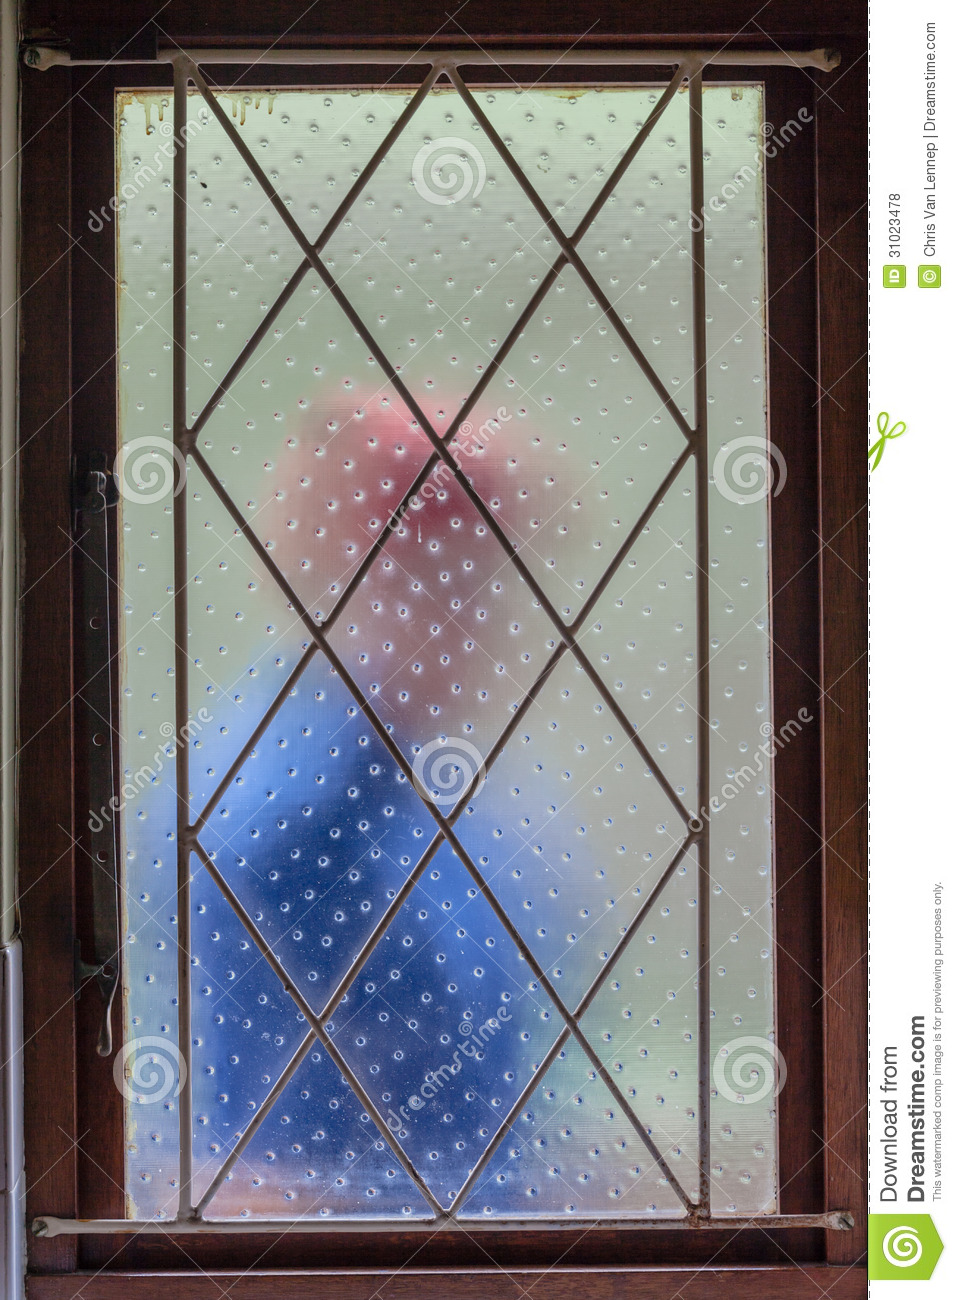 House Burglar Intruder Window Bars Stock Photo Image Of